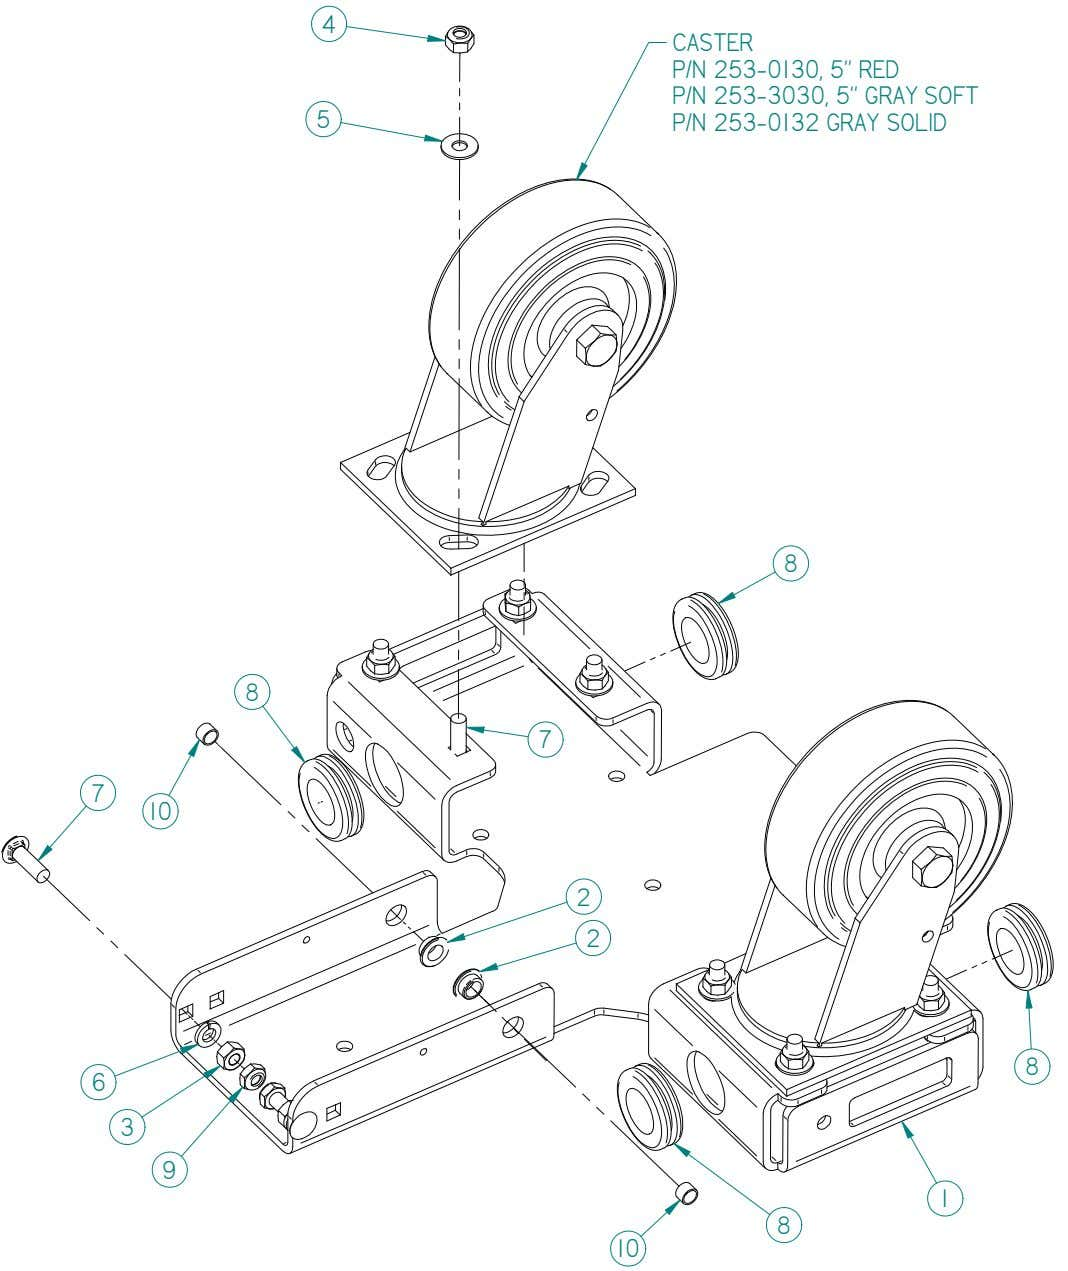 8 Caster Foot Assembly 8 Magnum Parts Manual V13.0315